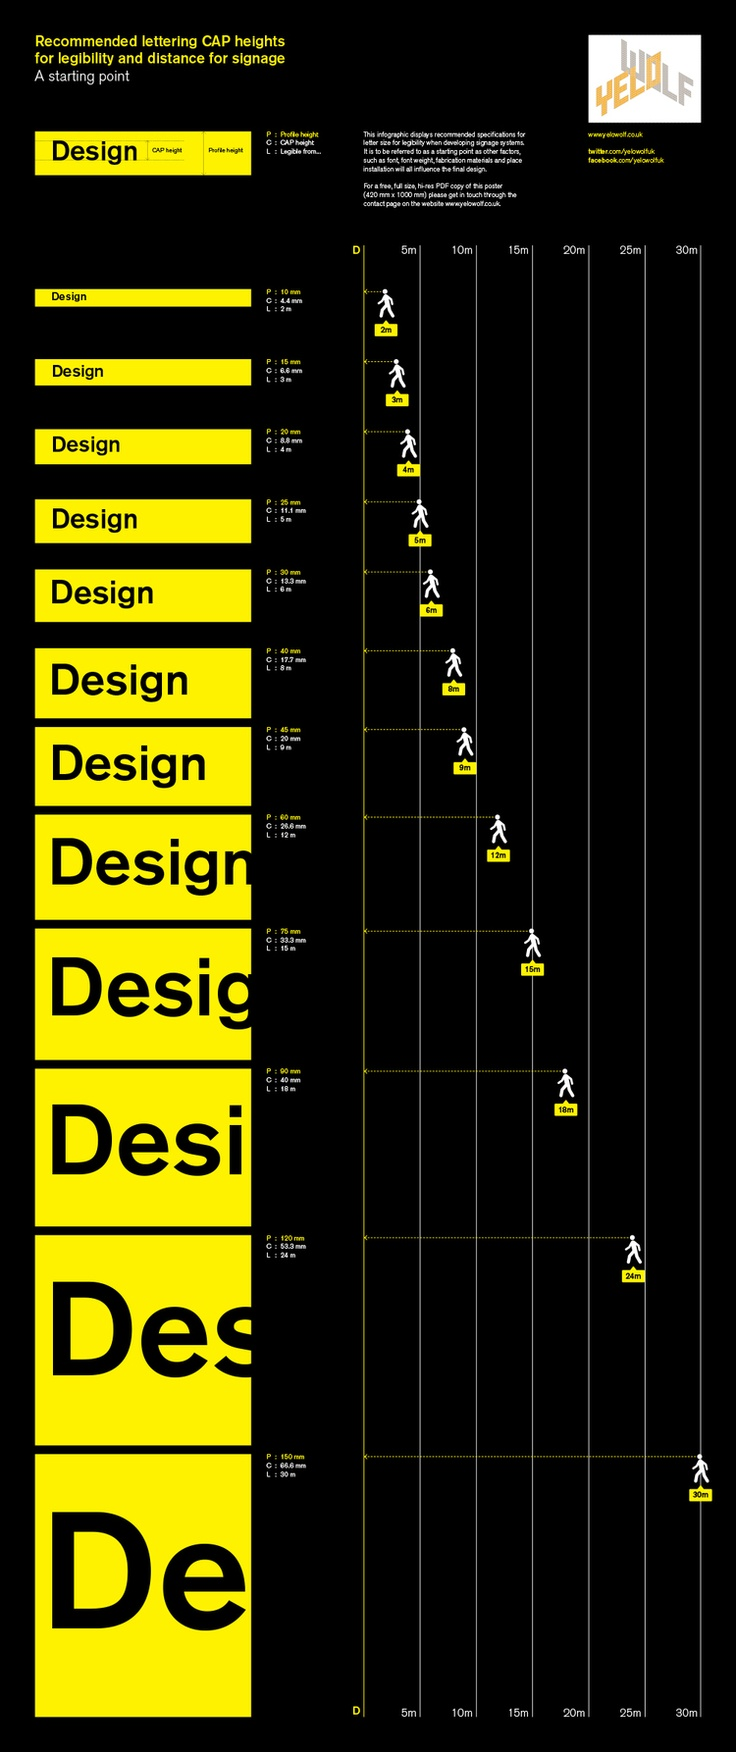 Infographic - lettering size for legibility for signage